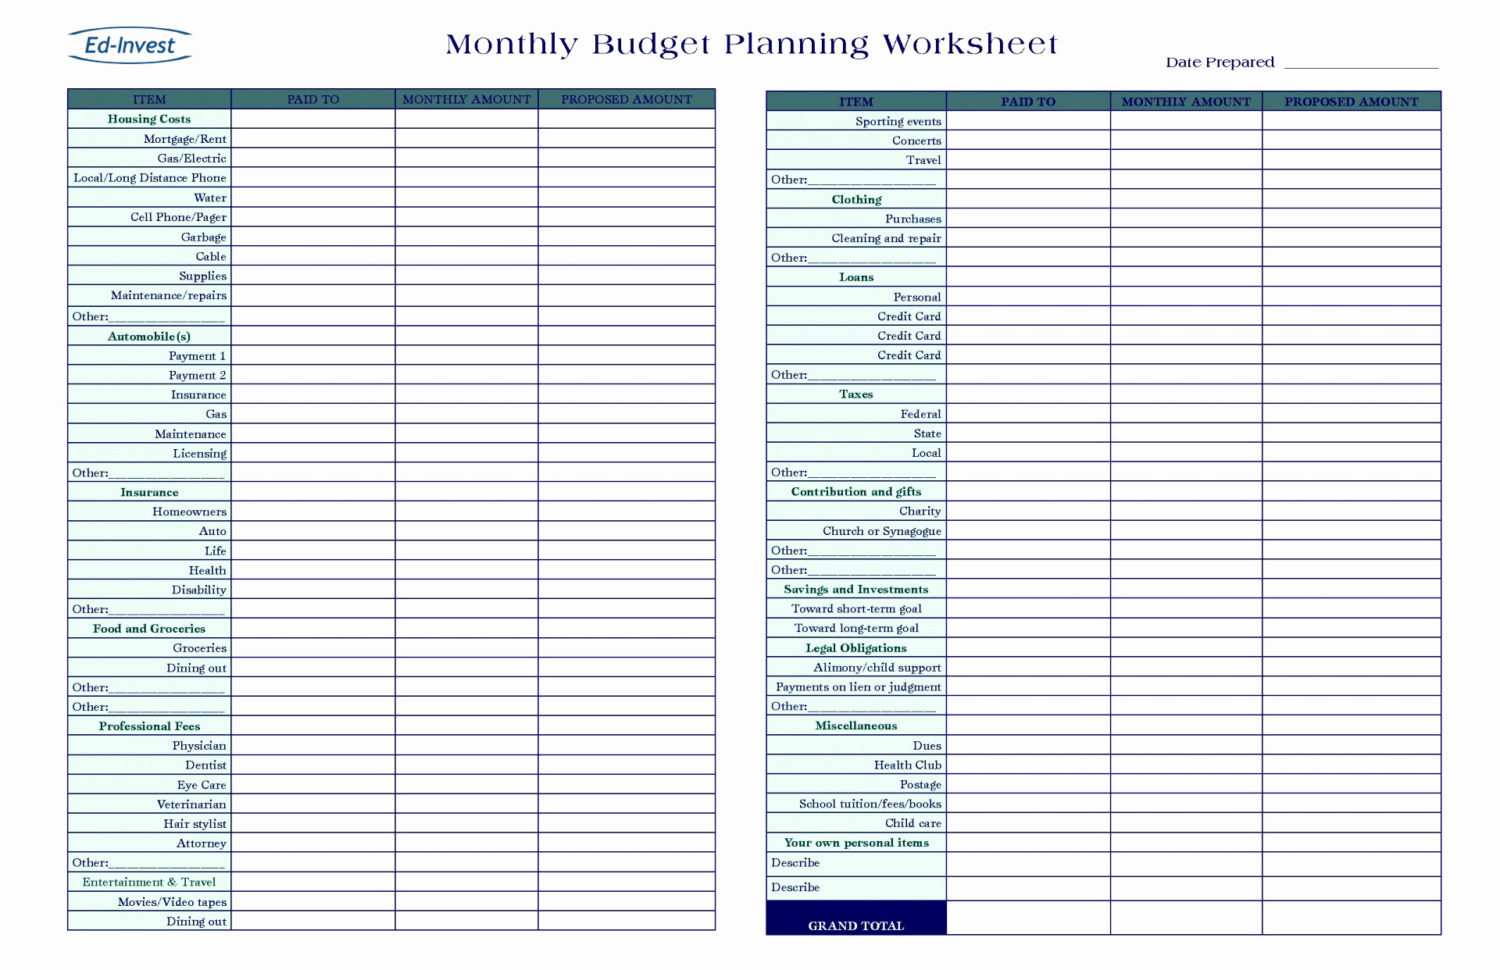 Financial Planning Spreadsheet For Startups For 011 Personal Financial Plan Template Excel Then Luxury Startup